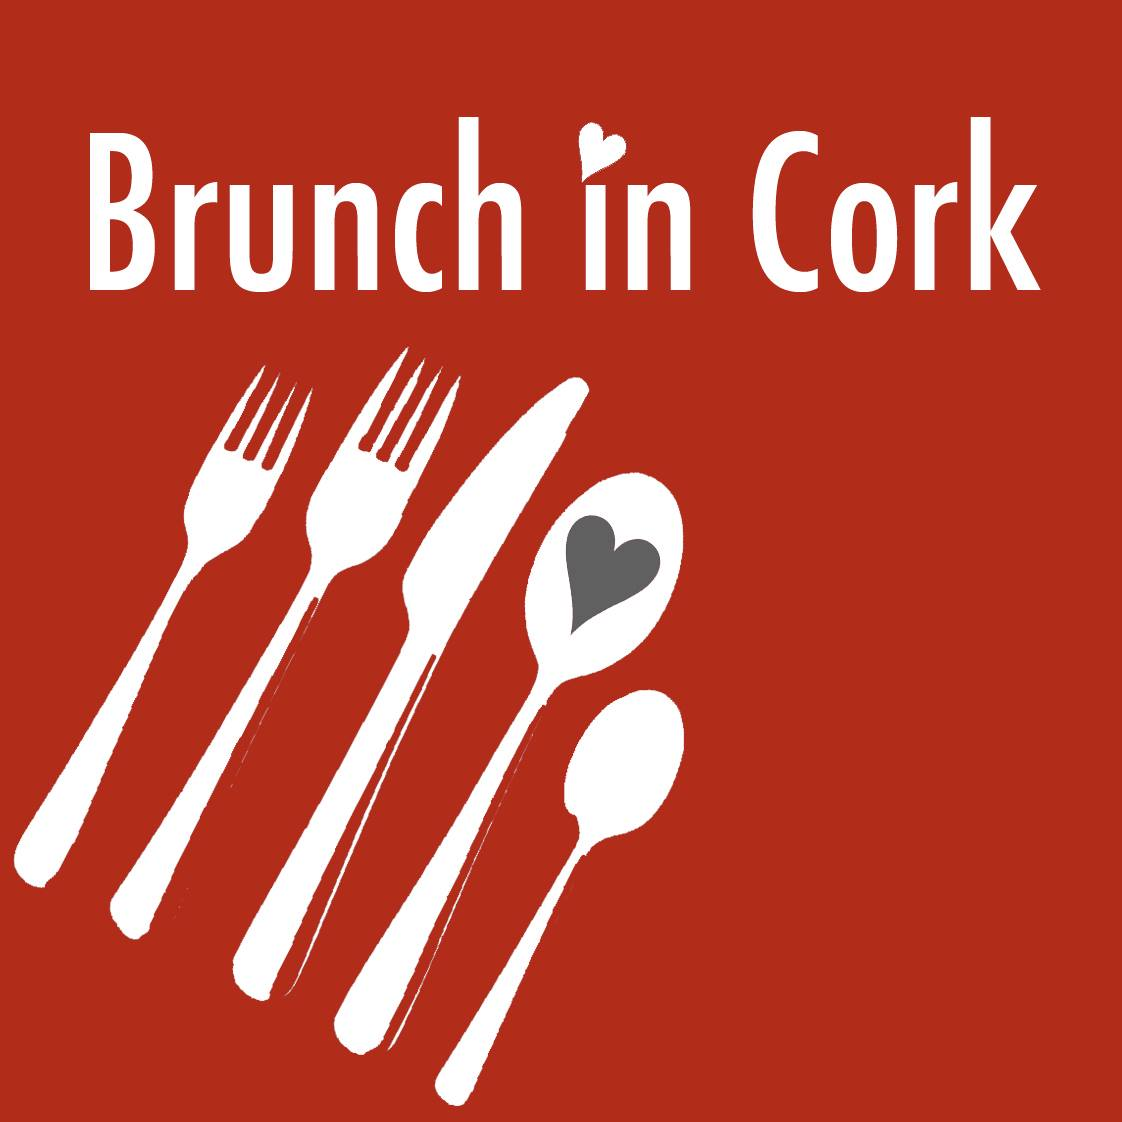 Cork City Brunch Options List by Day